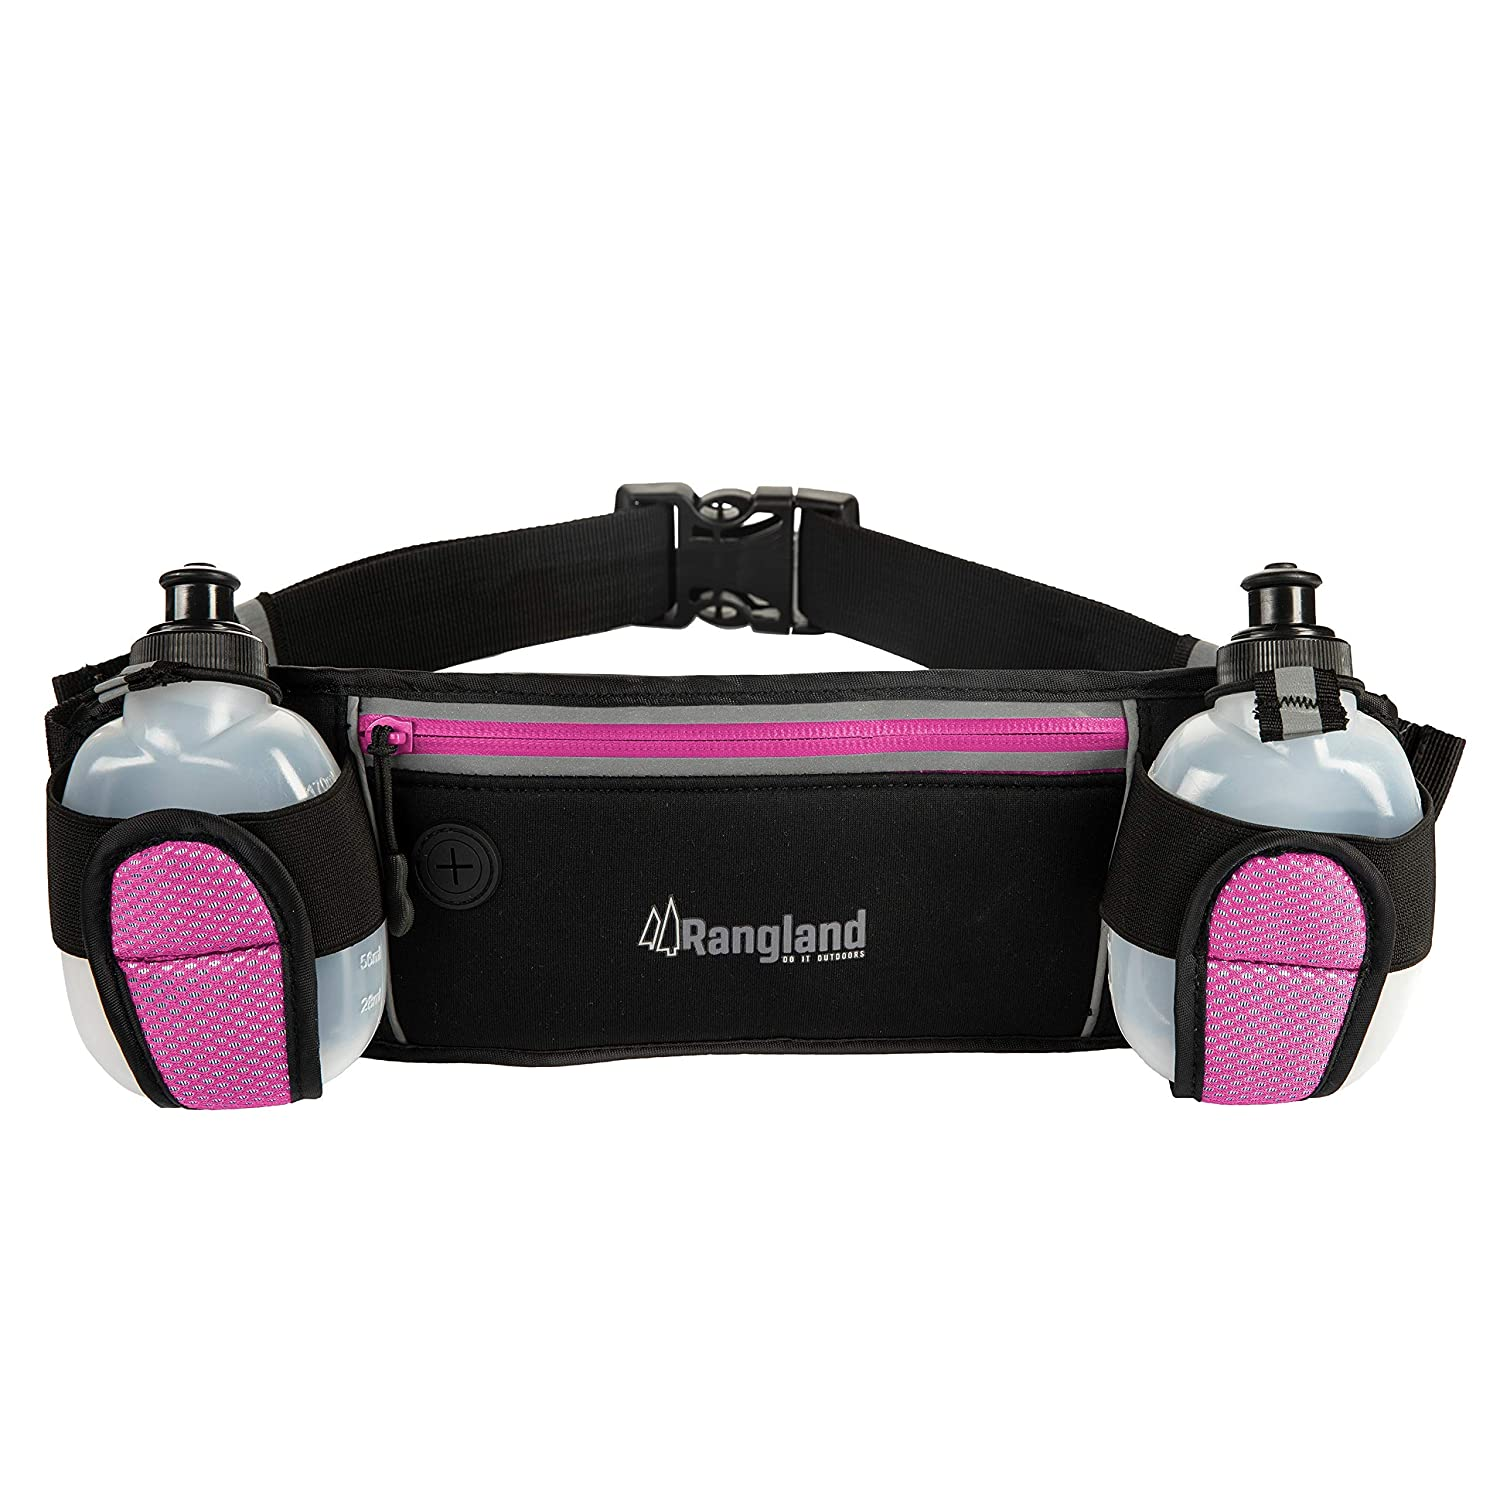 Rangland Sport Water Bottle Hydration Fanny Pack with Large Zippered Pocket Fits Phone,Cash and Cards Water Resistant Waist Pouch for Gym Workouts, Biking, Hiking, Running with 4 Free Bottles Pink